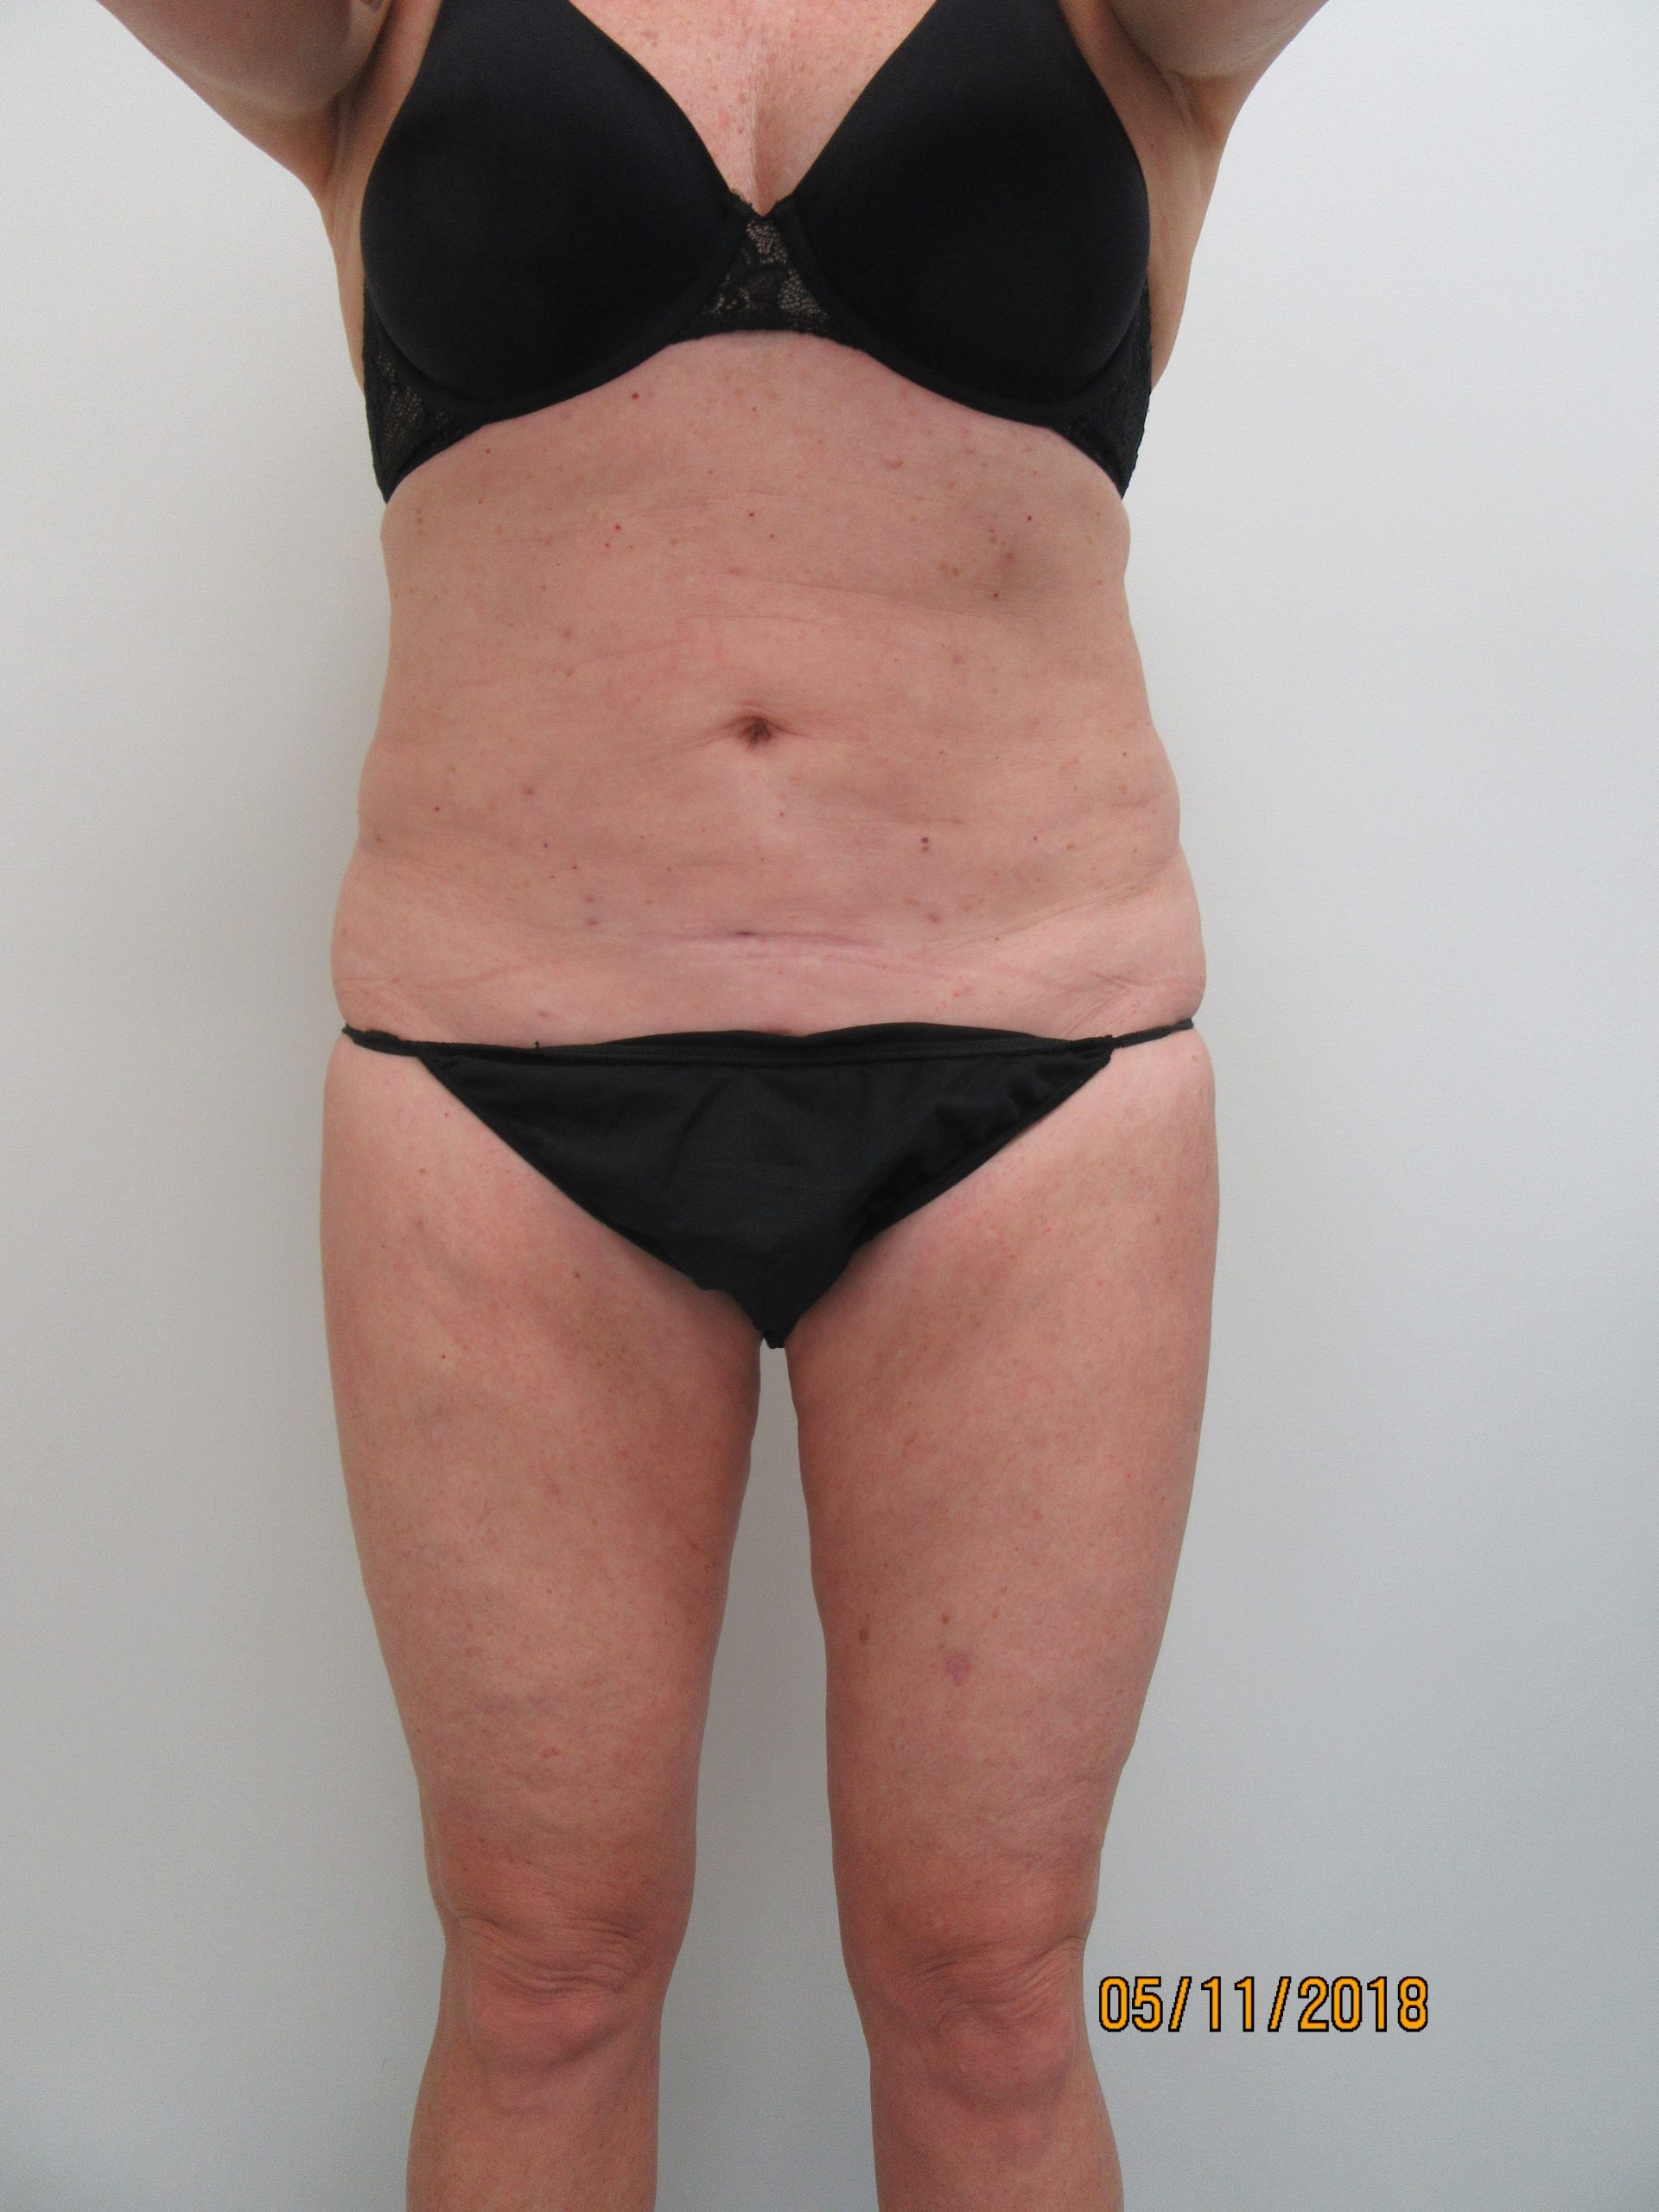 Case 0112 510827, Lipo After Abd, Before IT,IK